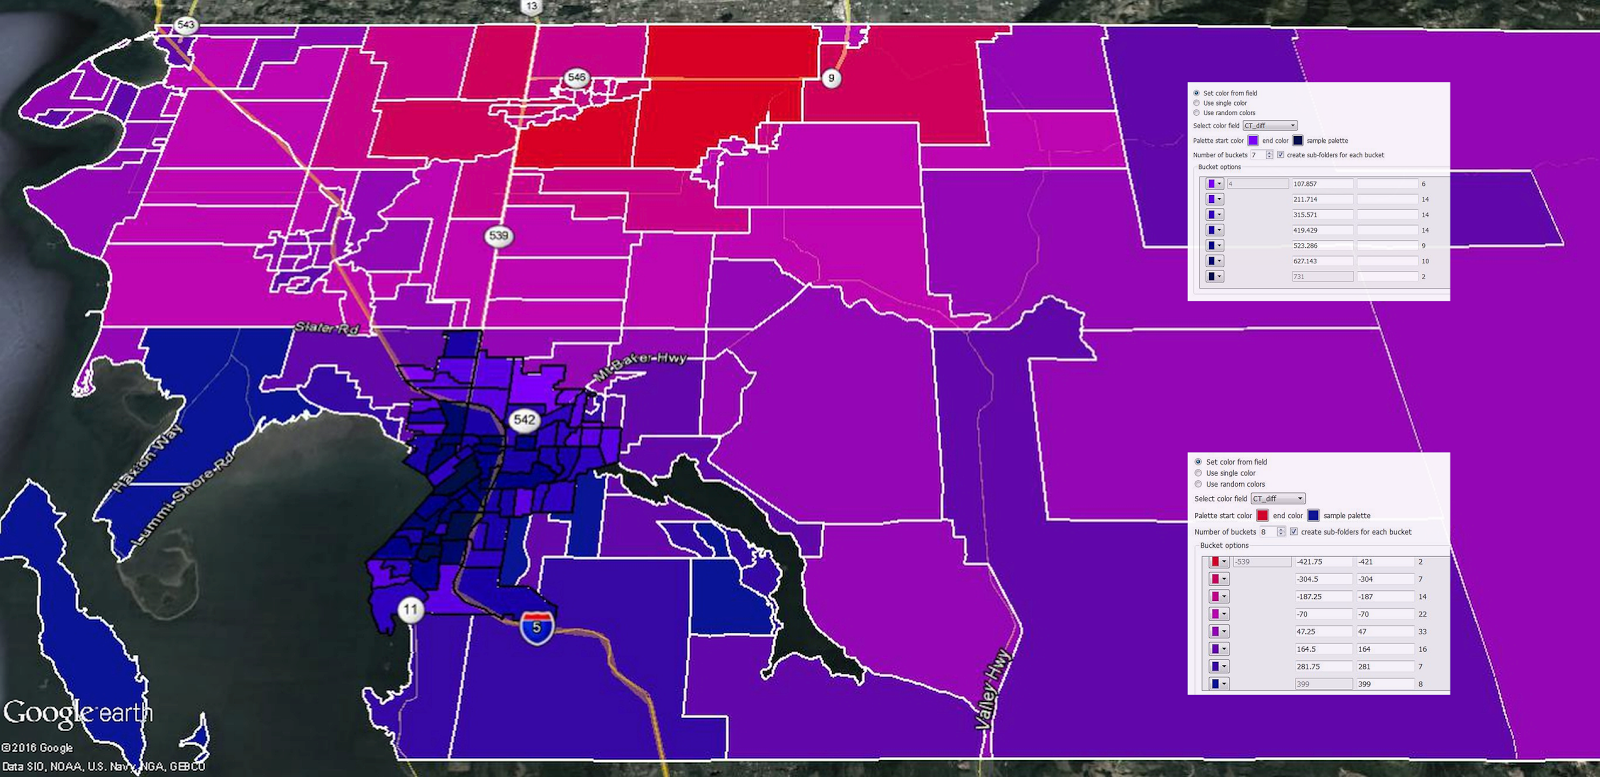 Link Democrat Endorsements GE The Balkanized Nd LD And A - 2016 us election map by county purple